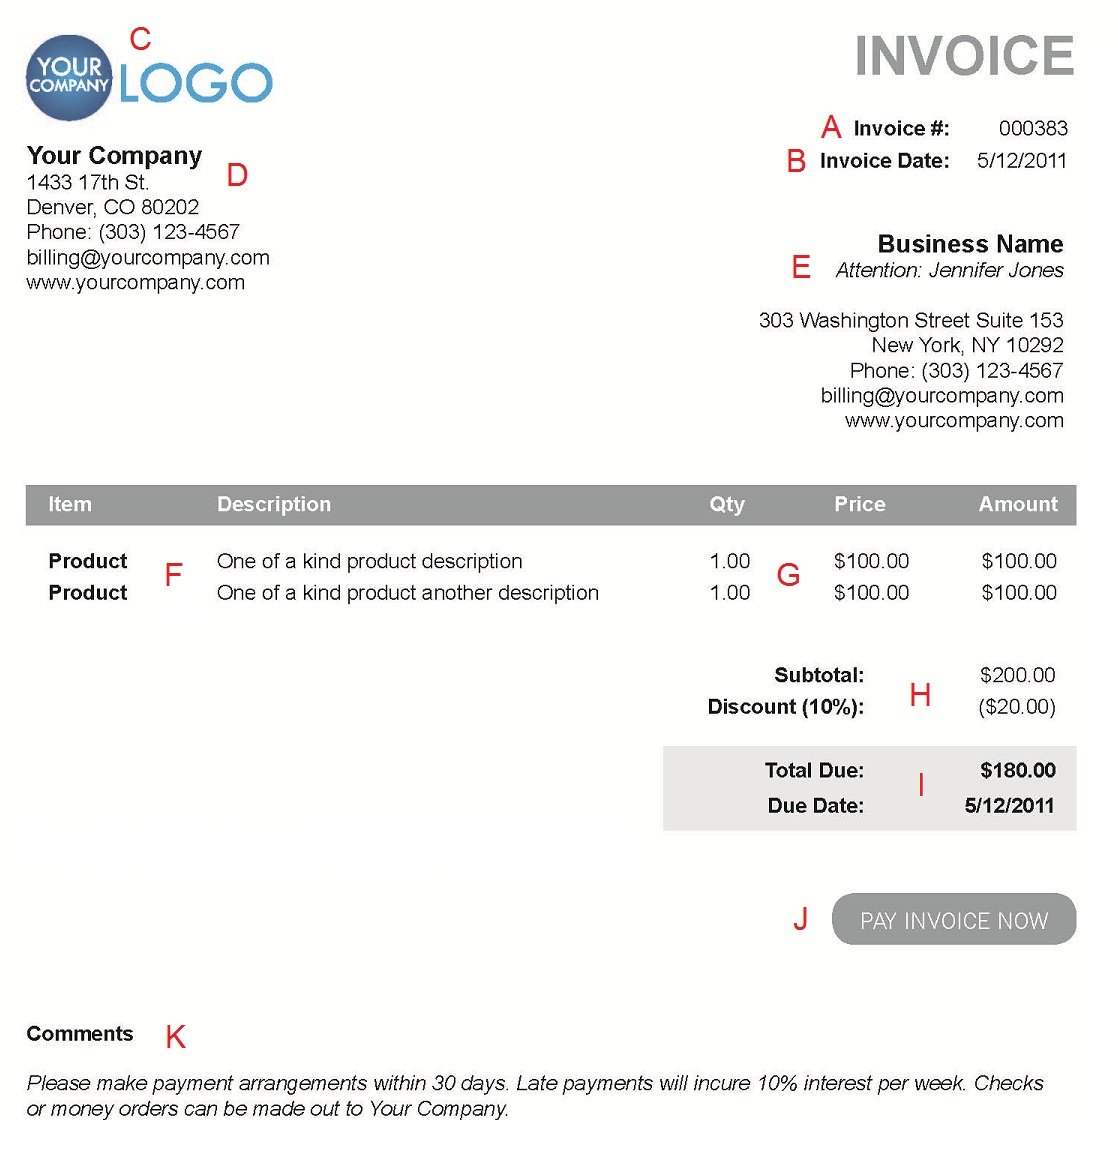 Reliefworkersus  Outstanding The  Different Sections Of An Electronic Payment Invoice With Goodlooking A  With Lovely How To Buy A Car Below Invoice Also Free Invoice Programs For Small Business In Addition How Do I Send An Invoice Through Paypal And How To Create A Invoice In Word As Well As Consultant Invoice Template Excel Additionally Free Online Invoice Forms From Paysimplecom With Reliefworkersus  Goodlooking The  Different Sections Of An Electronic Payment Invoice With Lovely A  And Outstanding How To Buy A Car Below Invoice Also Free Invoice Programs For Small Business In Addition How Do I Send An Invoice Through Paypal From Paysimplecom